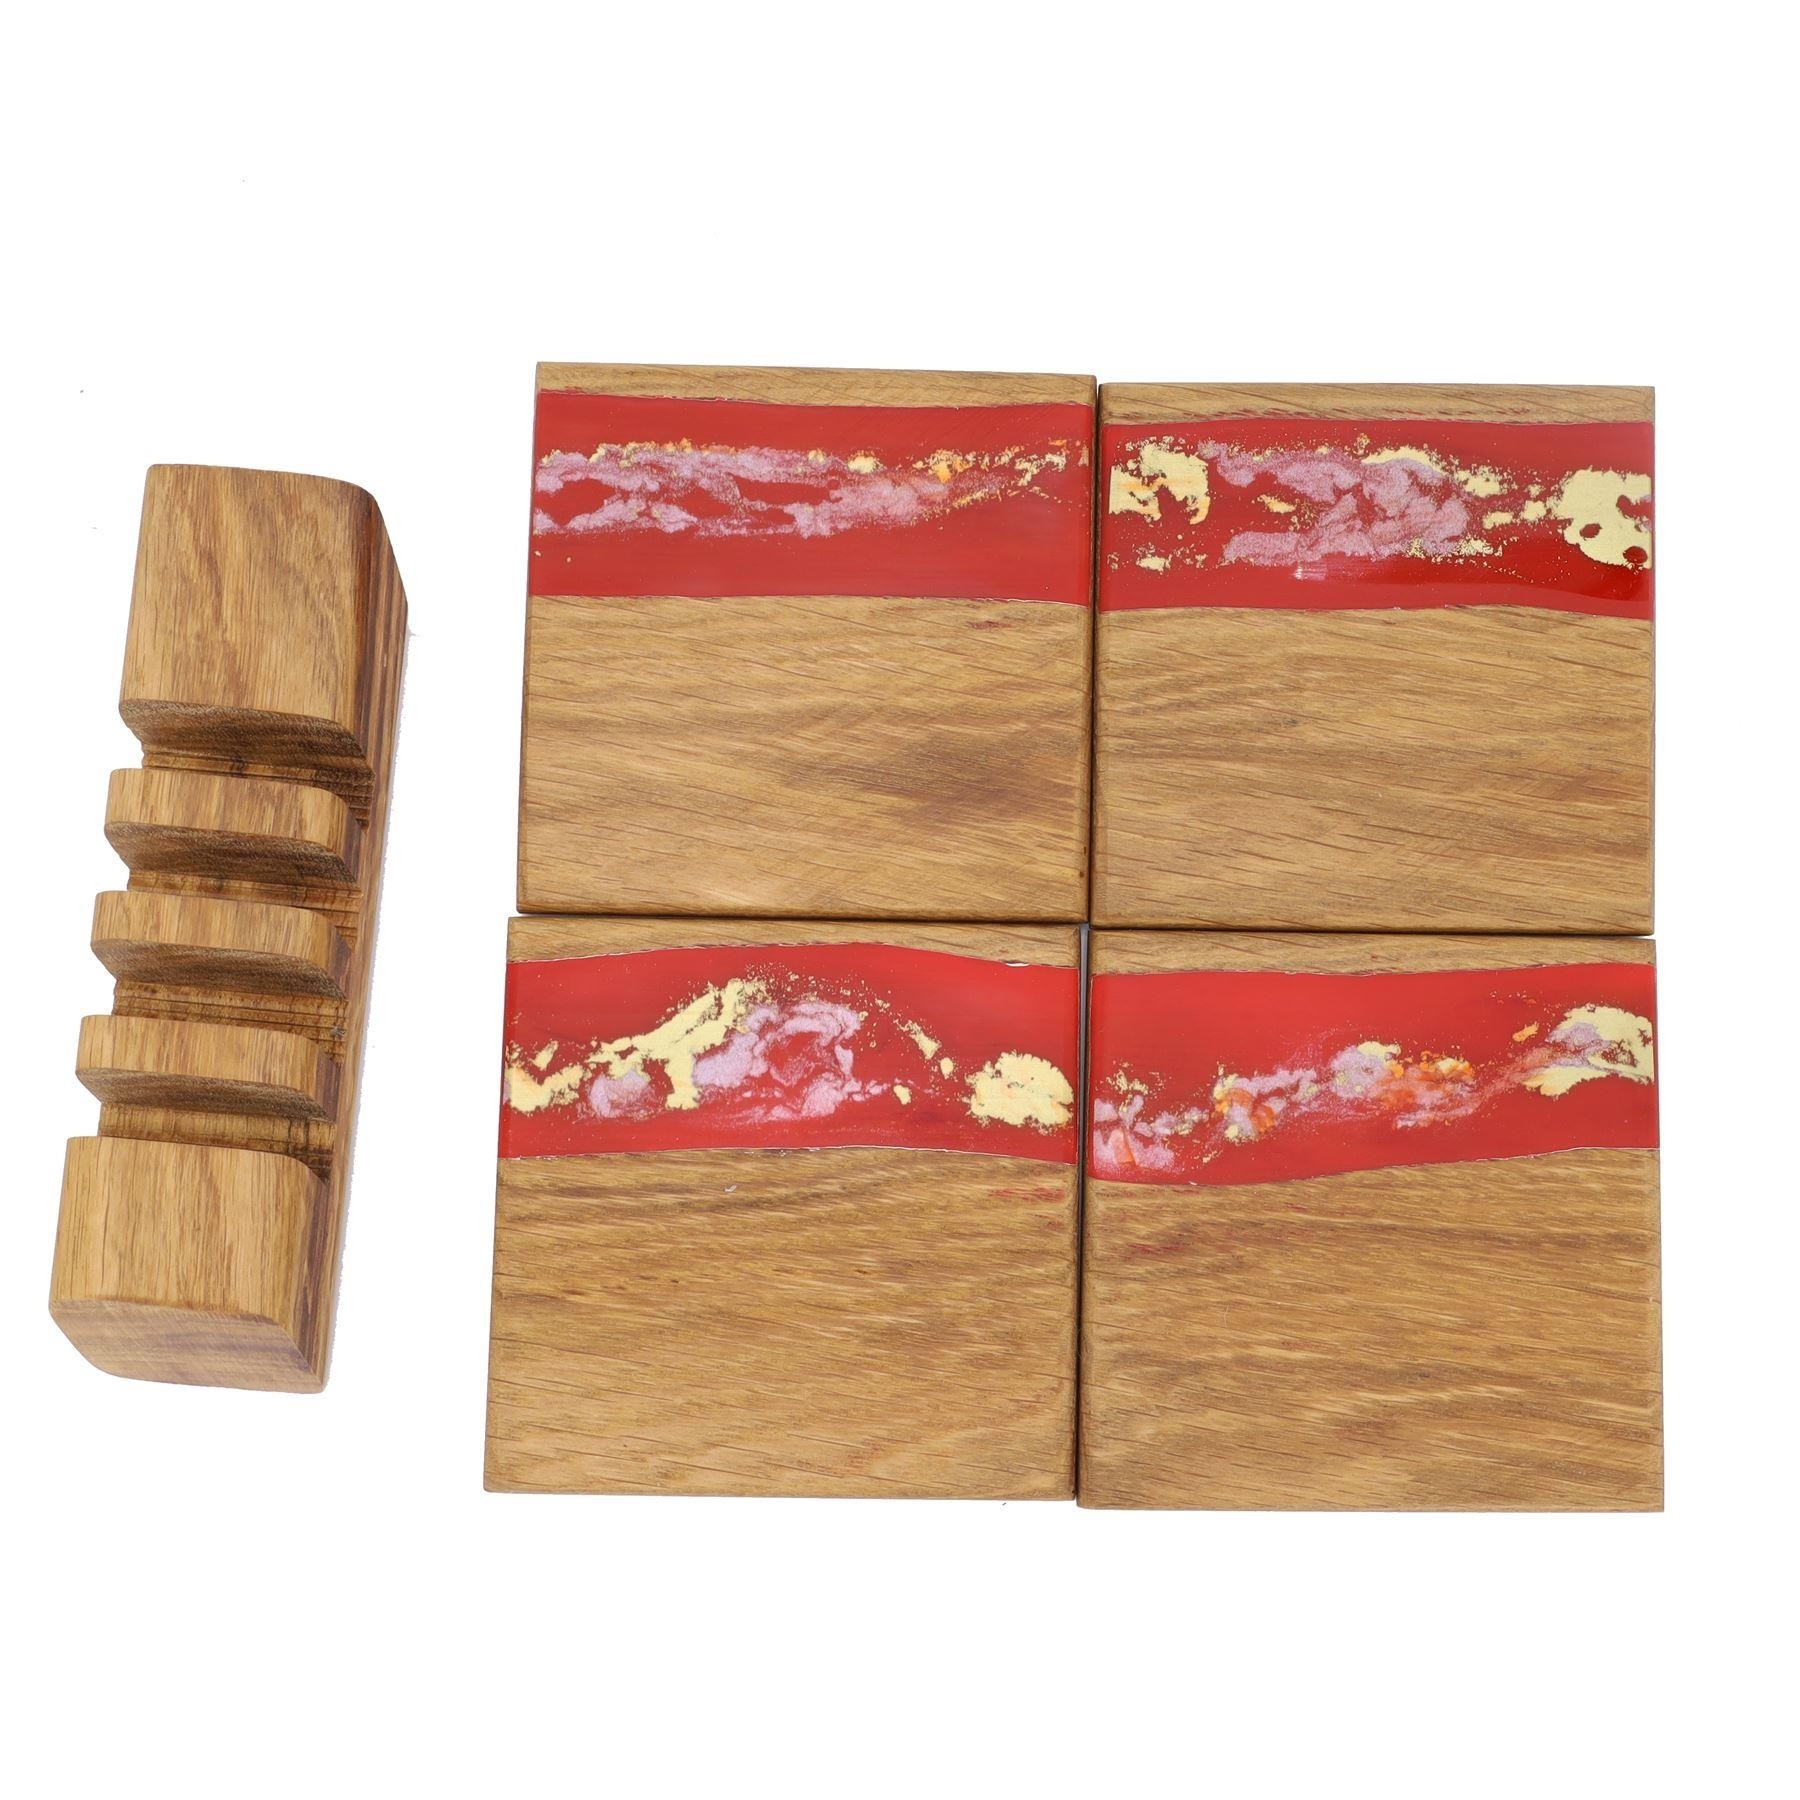 4 wooden oak and red gold resin coasters and stand